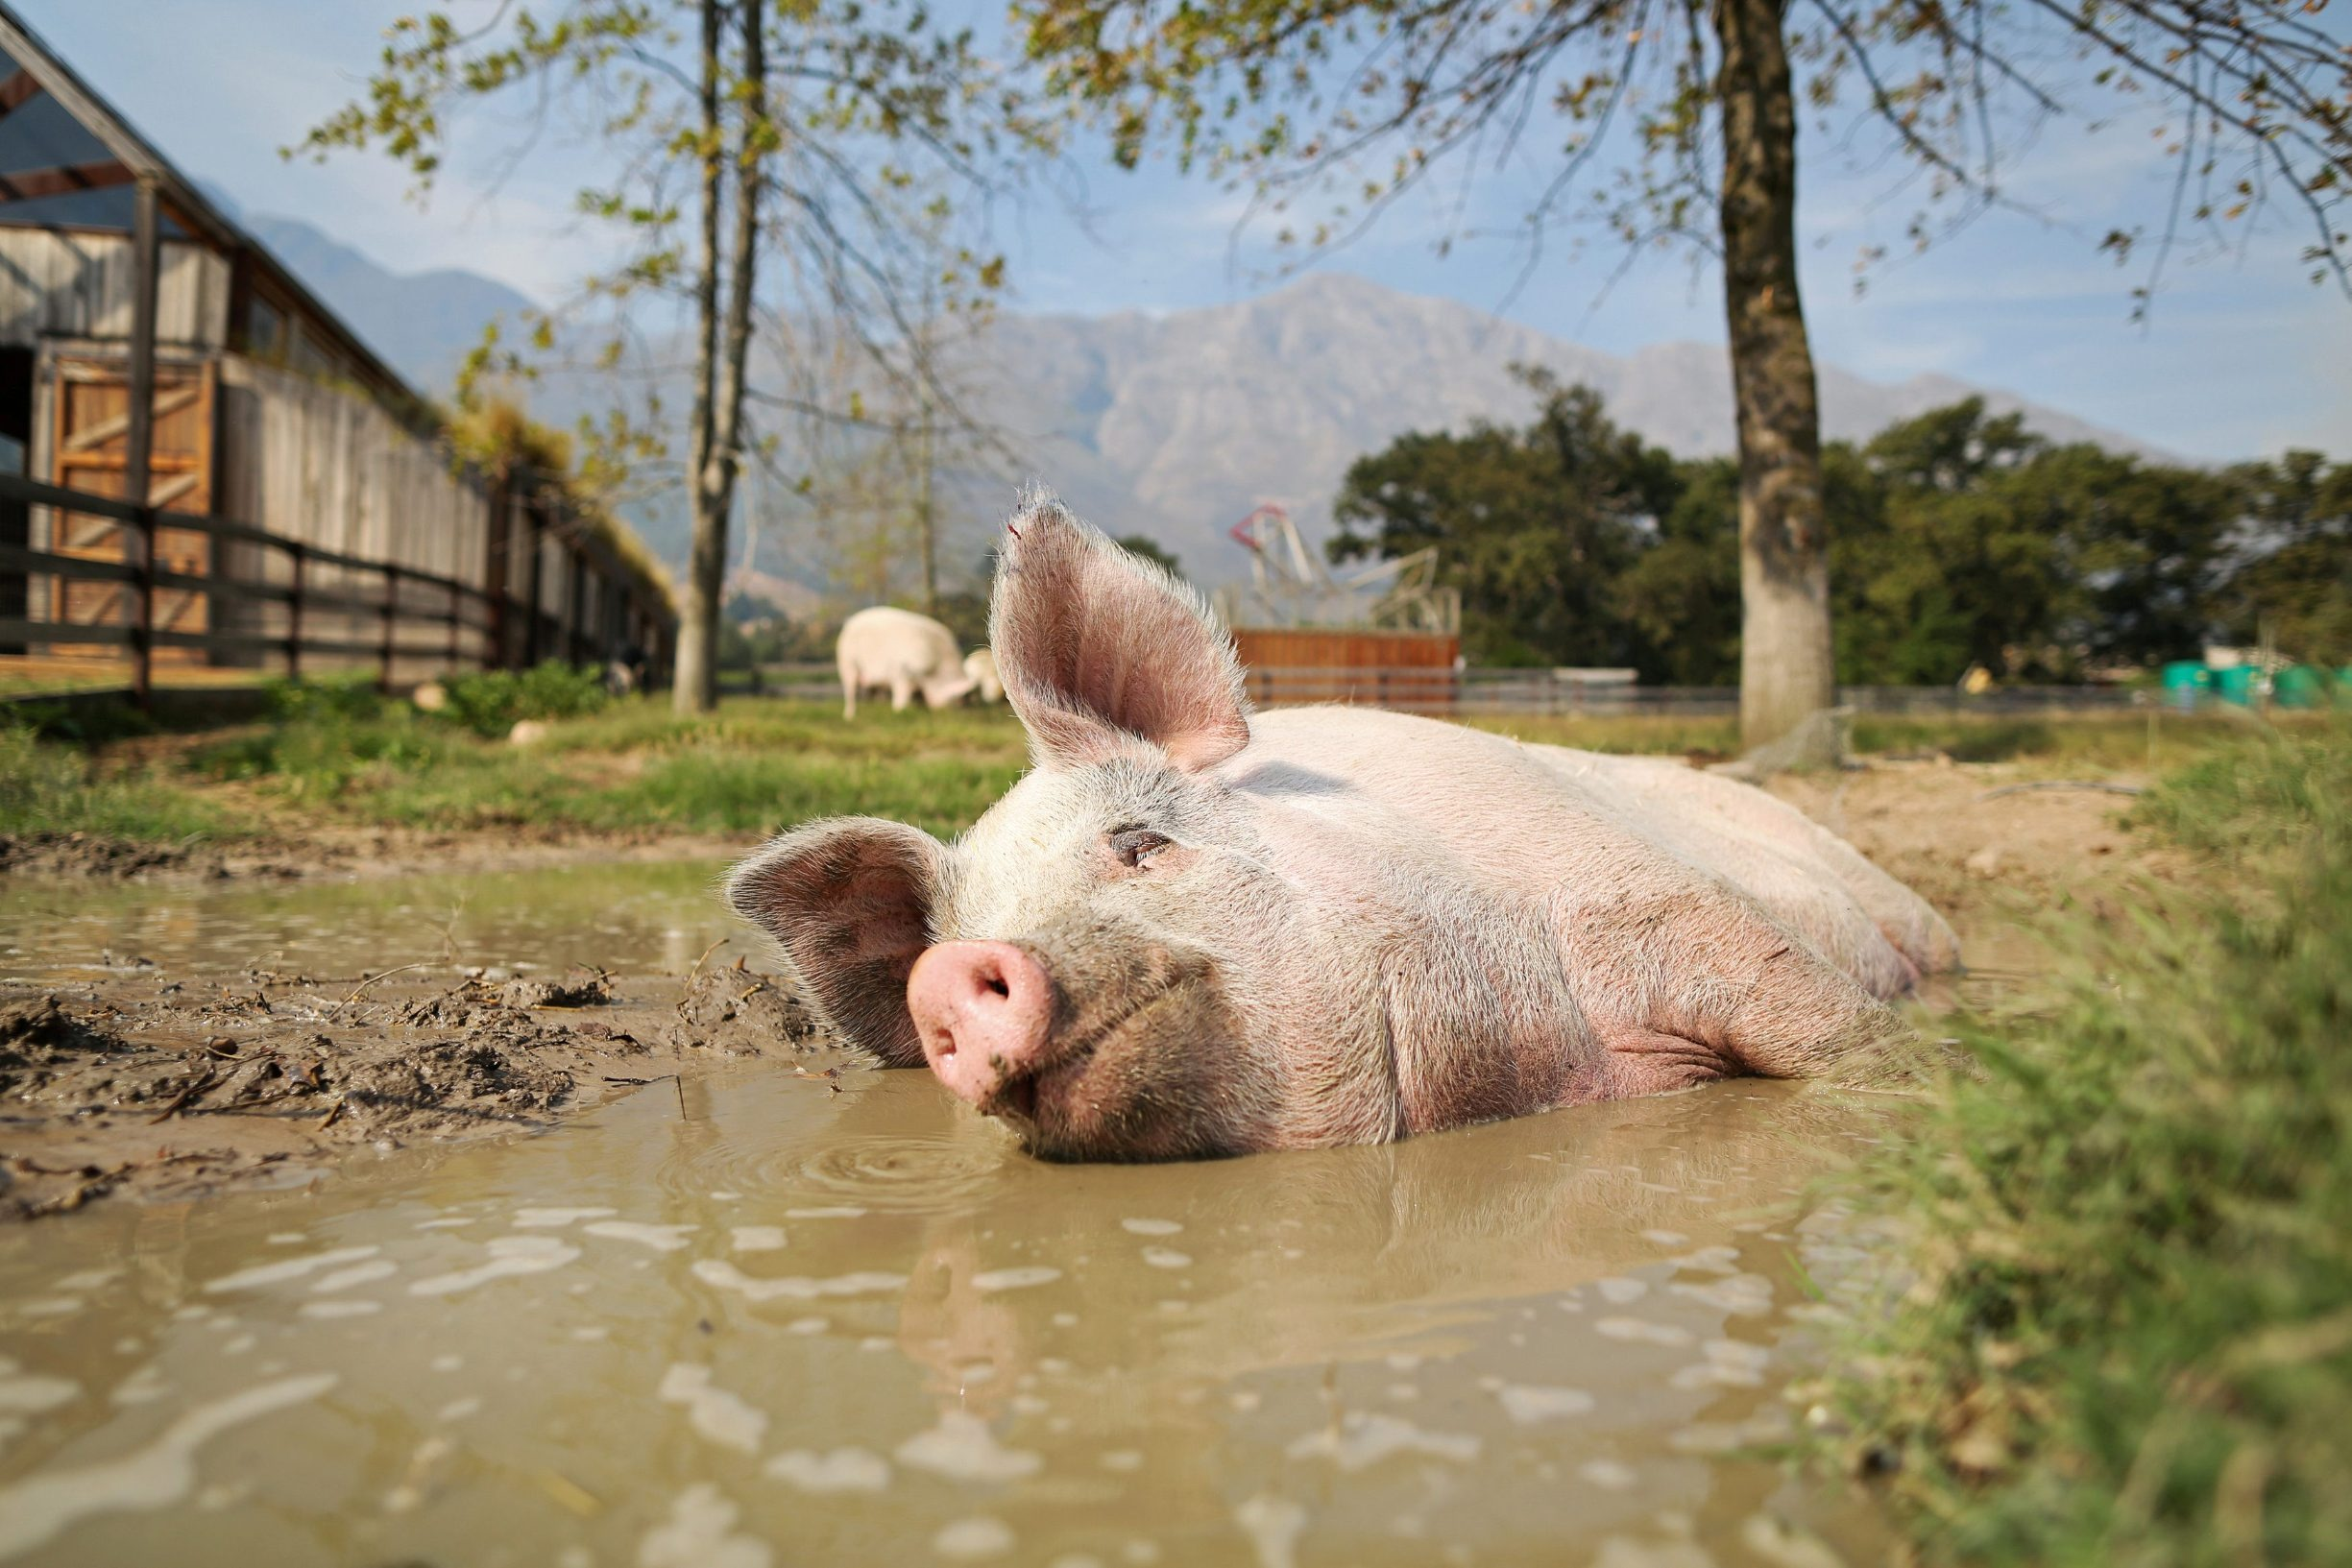 FILE PHOTO: Pigcasso, cools down in a mud bath after painting at the Farm Sanctuary in Franschhoek, outside Cape Town, South Africa February 21, 2019. 2019. REUTERS/Sumaya Hisham/File Photo